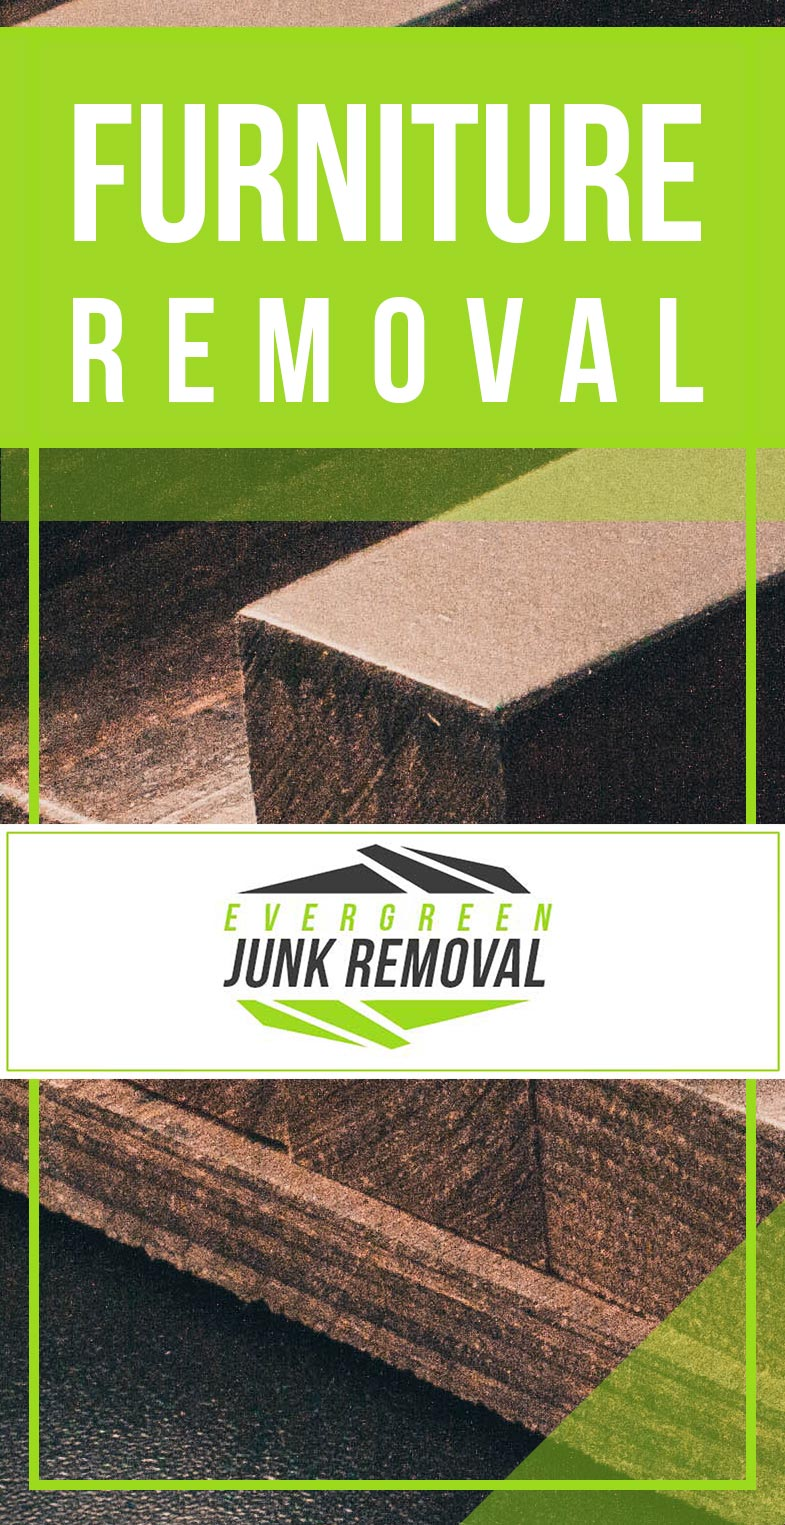 Junk Removal Lake Worth Furniture Removal